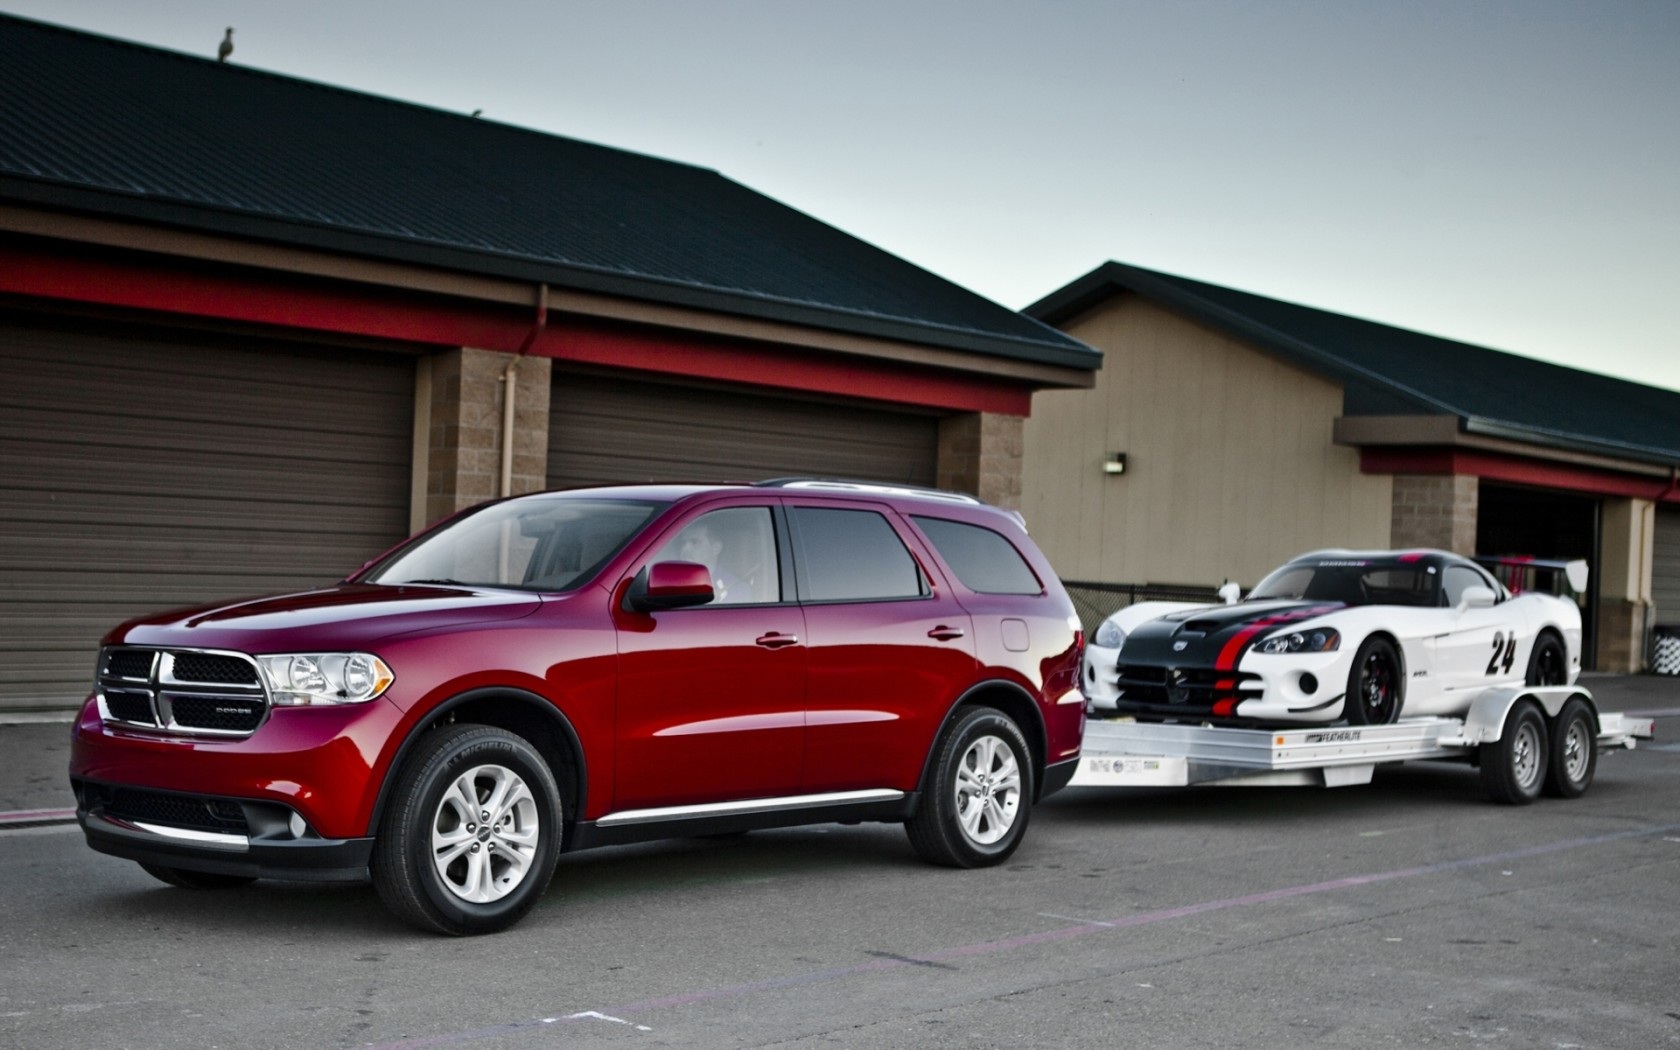 Dodge durango photo - 4